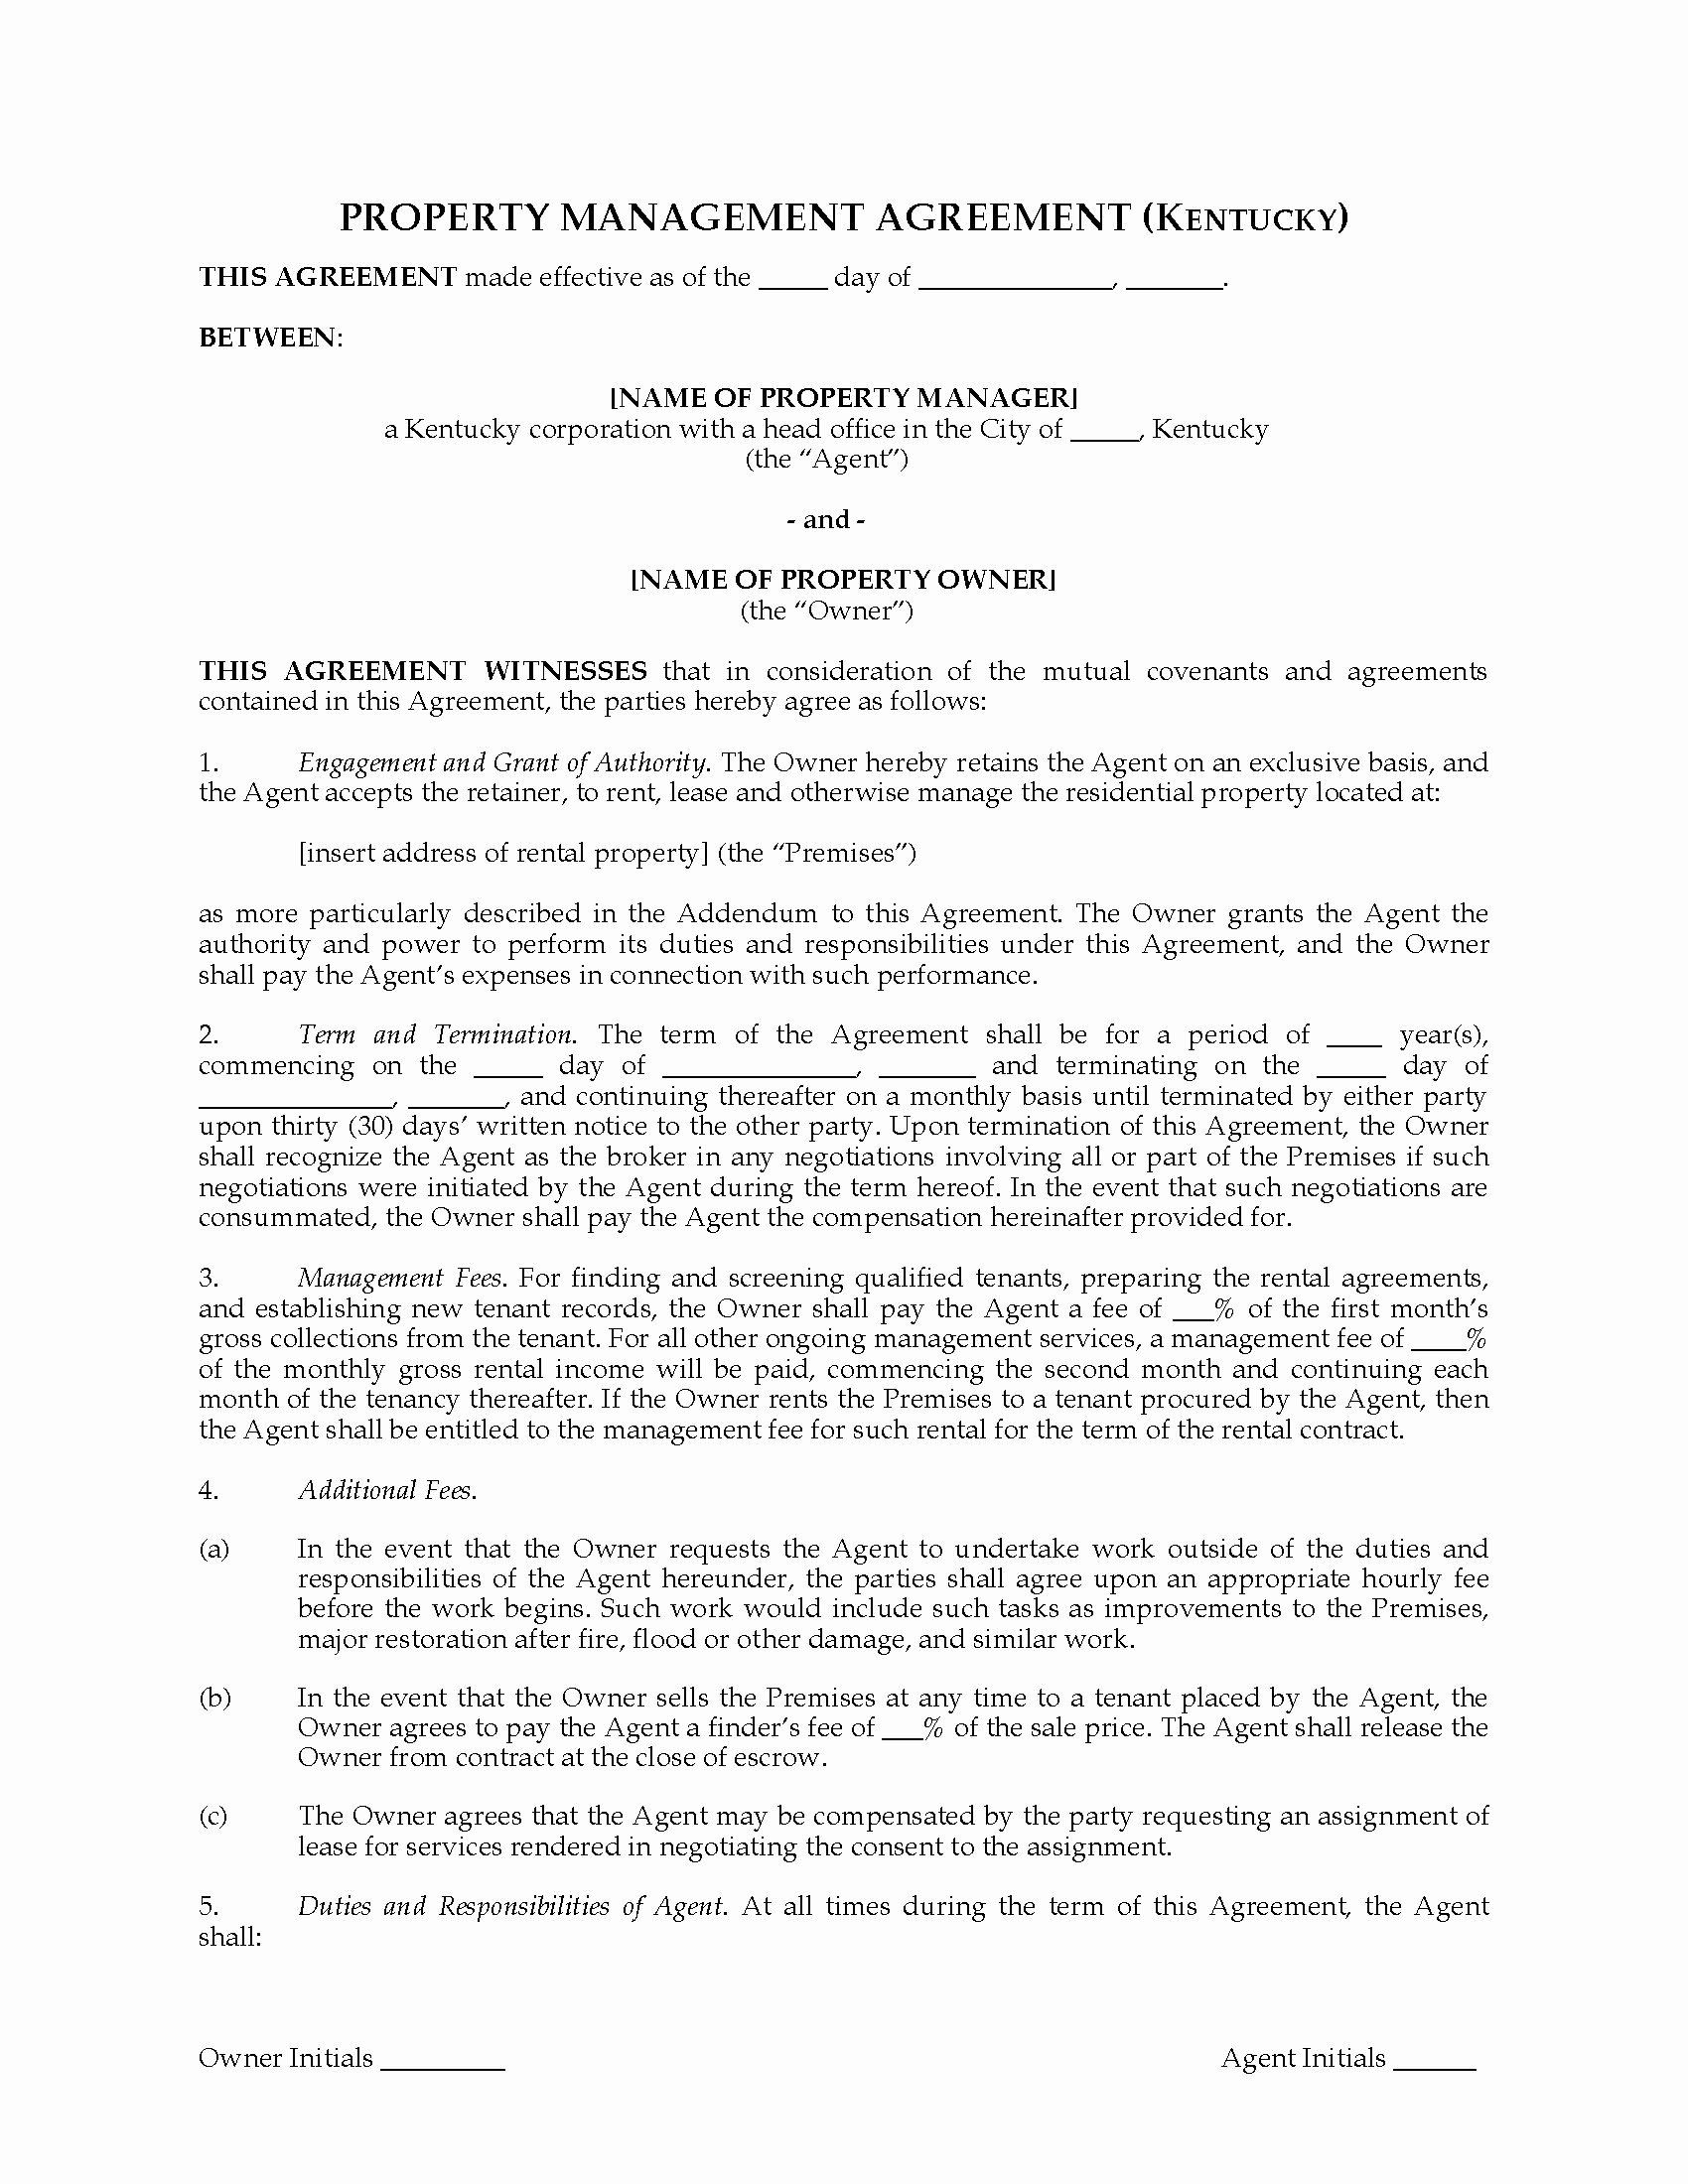 Property Management Contract Template Best Of Kentucky Rental Property Management Agreement